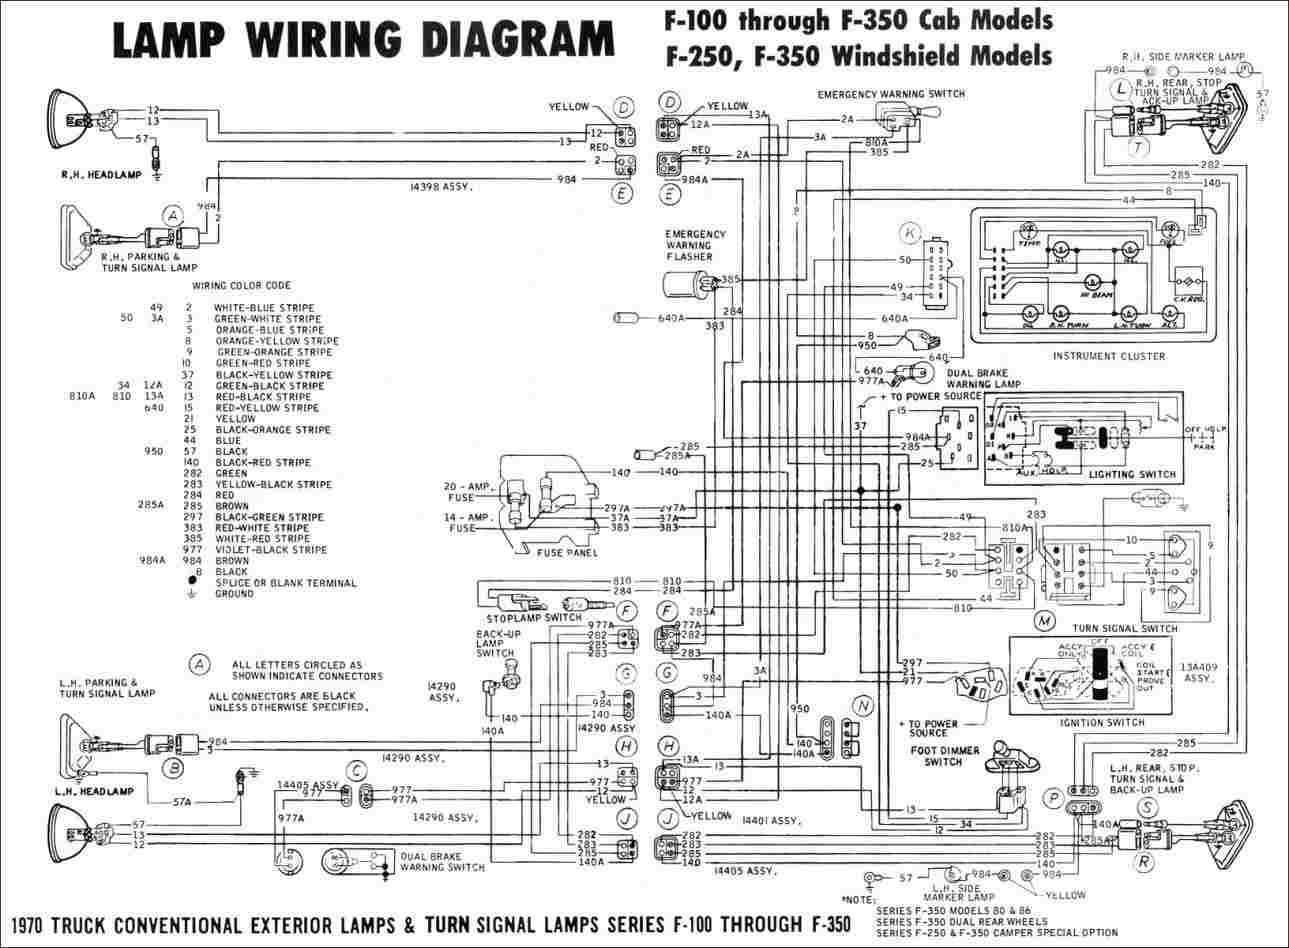 4 Port Fisher Wiring Diagram | Wiring Diagram - Fisher 4 Port Isolation Module Wiring Diagram